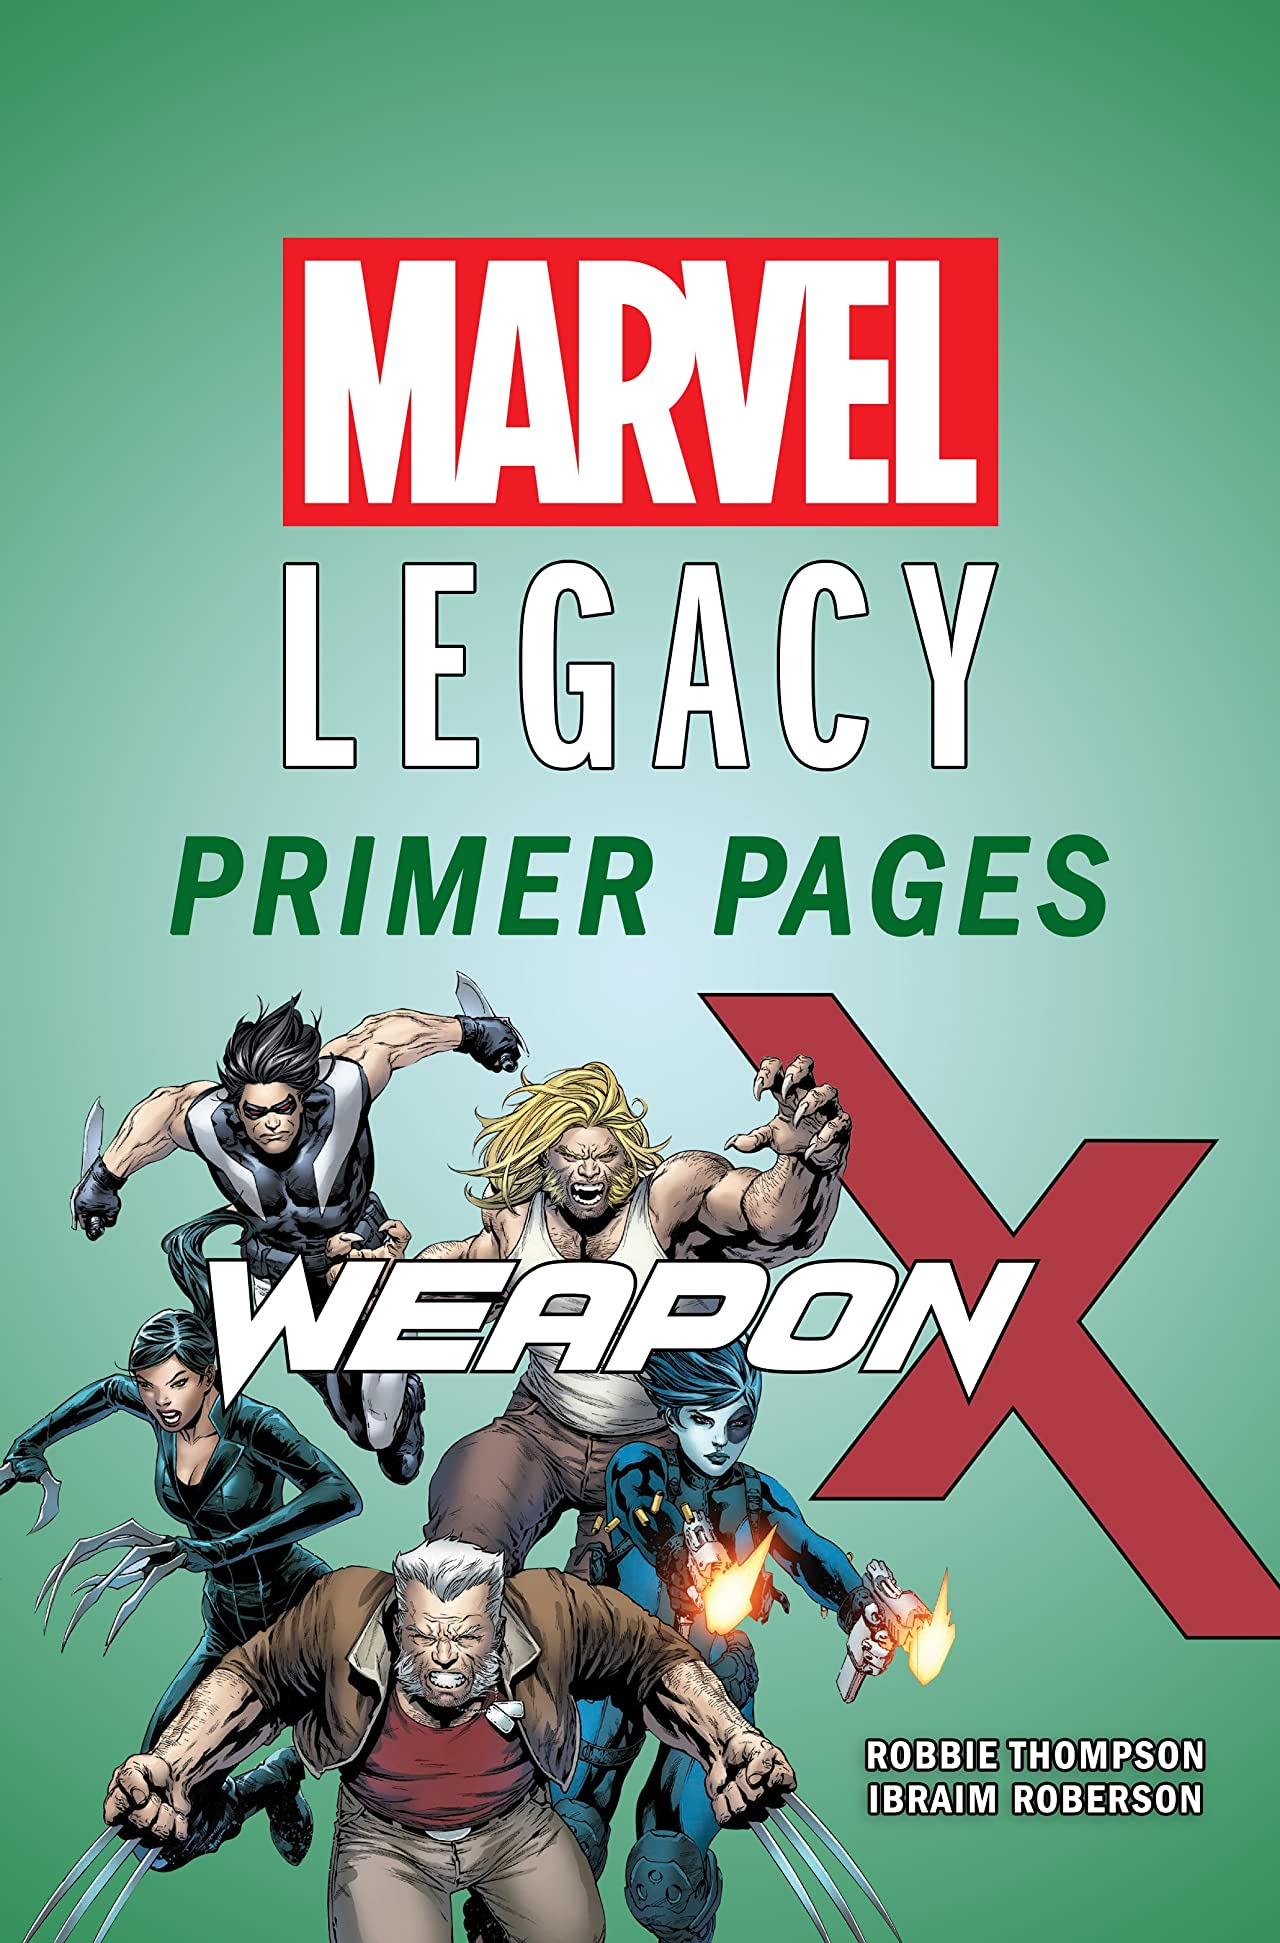 Weapon X - Marvel Legacy Primer Pages